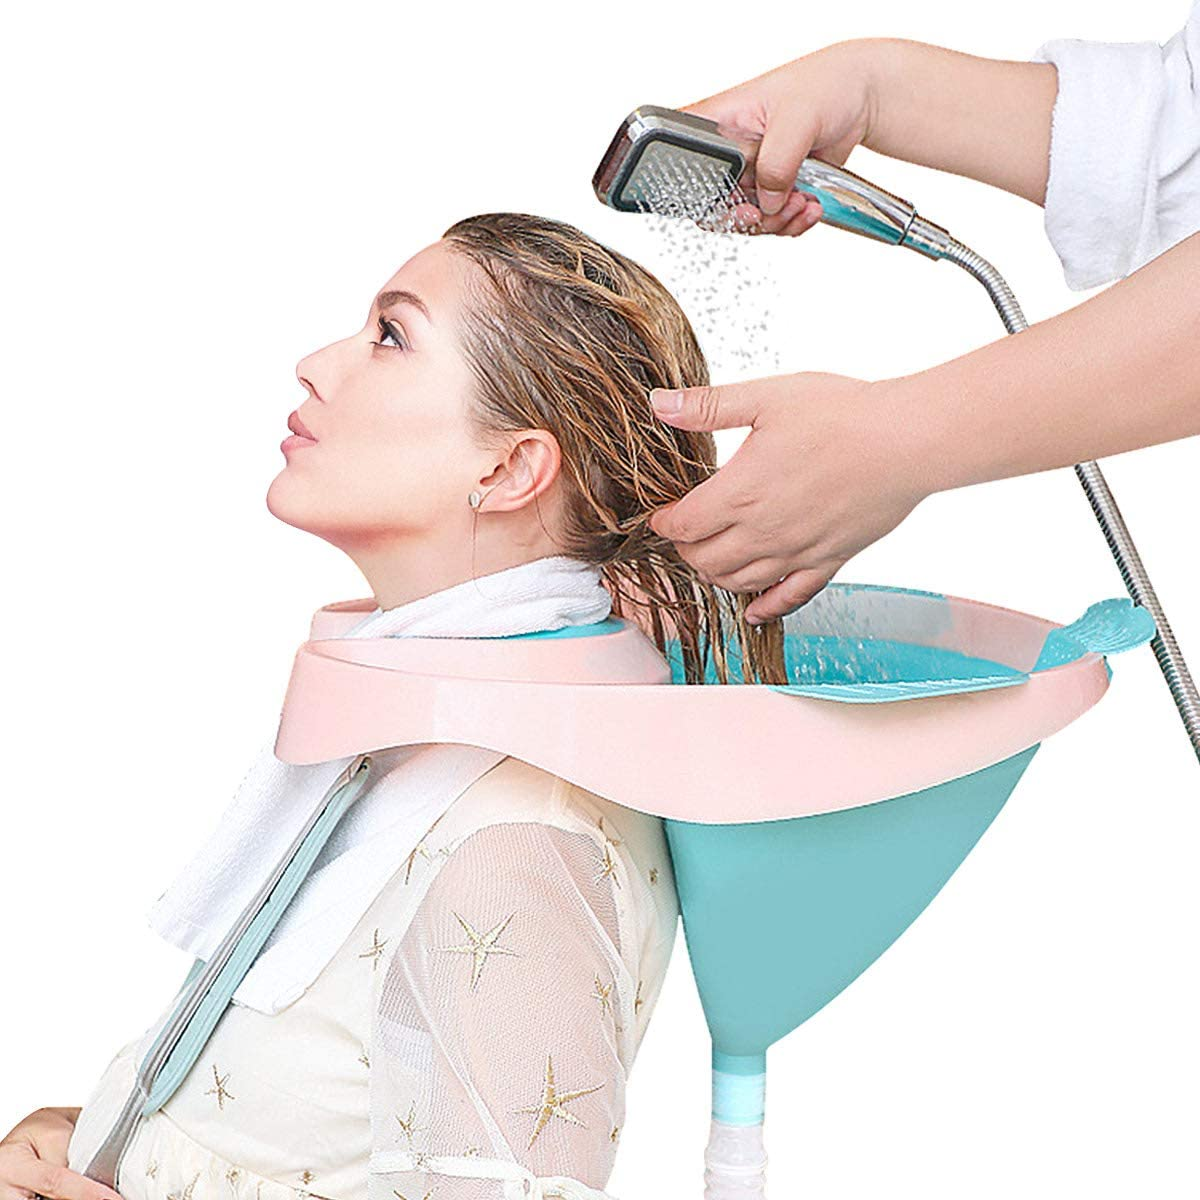 DECMAY Foldable Portable Shampoo Basin, Hair Washing Bowl Basin at Home with Strap and Removable Draining Tube for Pregnant Women/Elderly/Disabled